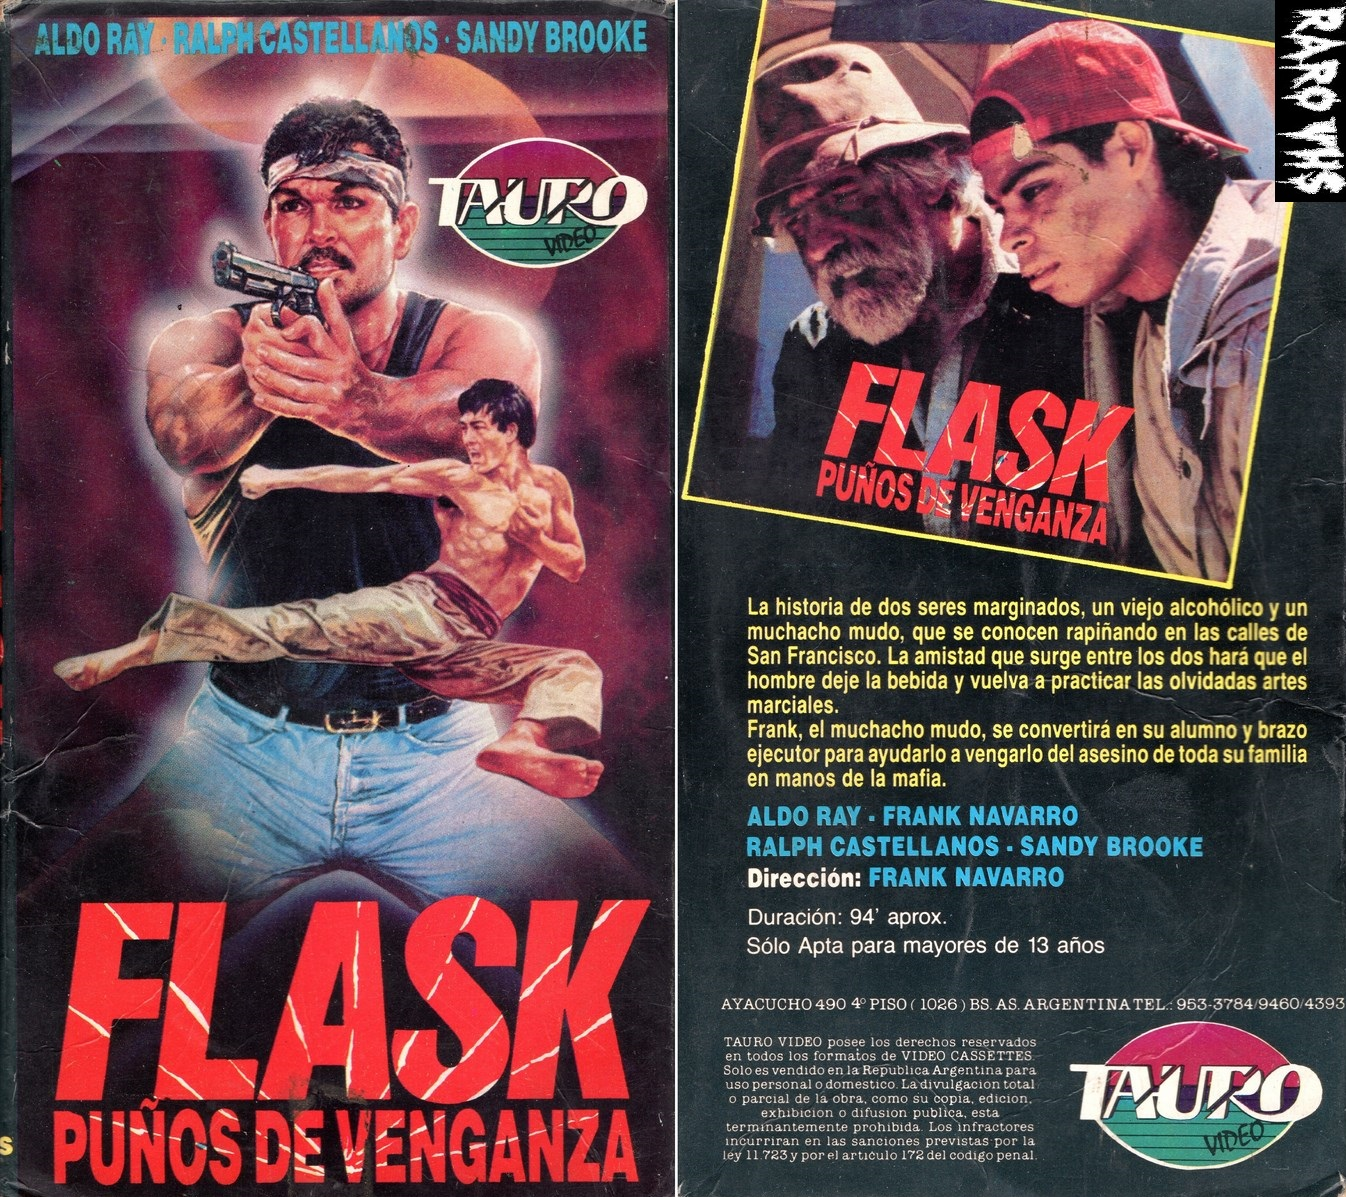 FLASK 1988